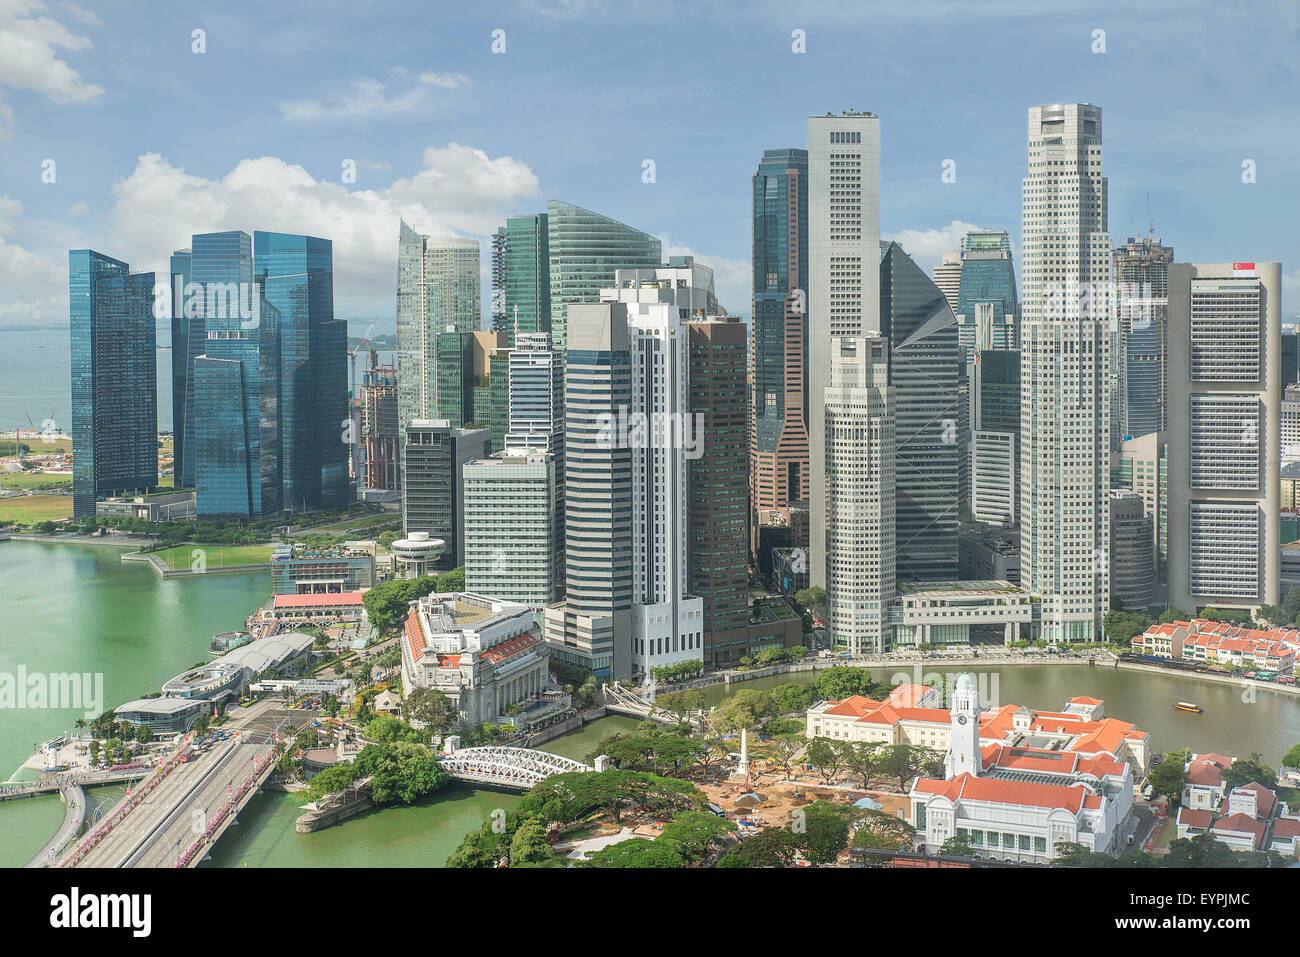 Skyline von Singapur. Geschäftsviertel Singapurs. Stockbild